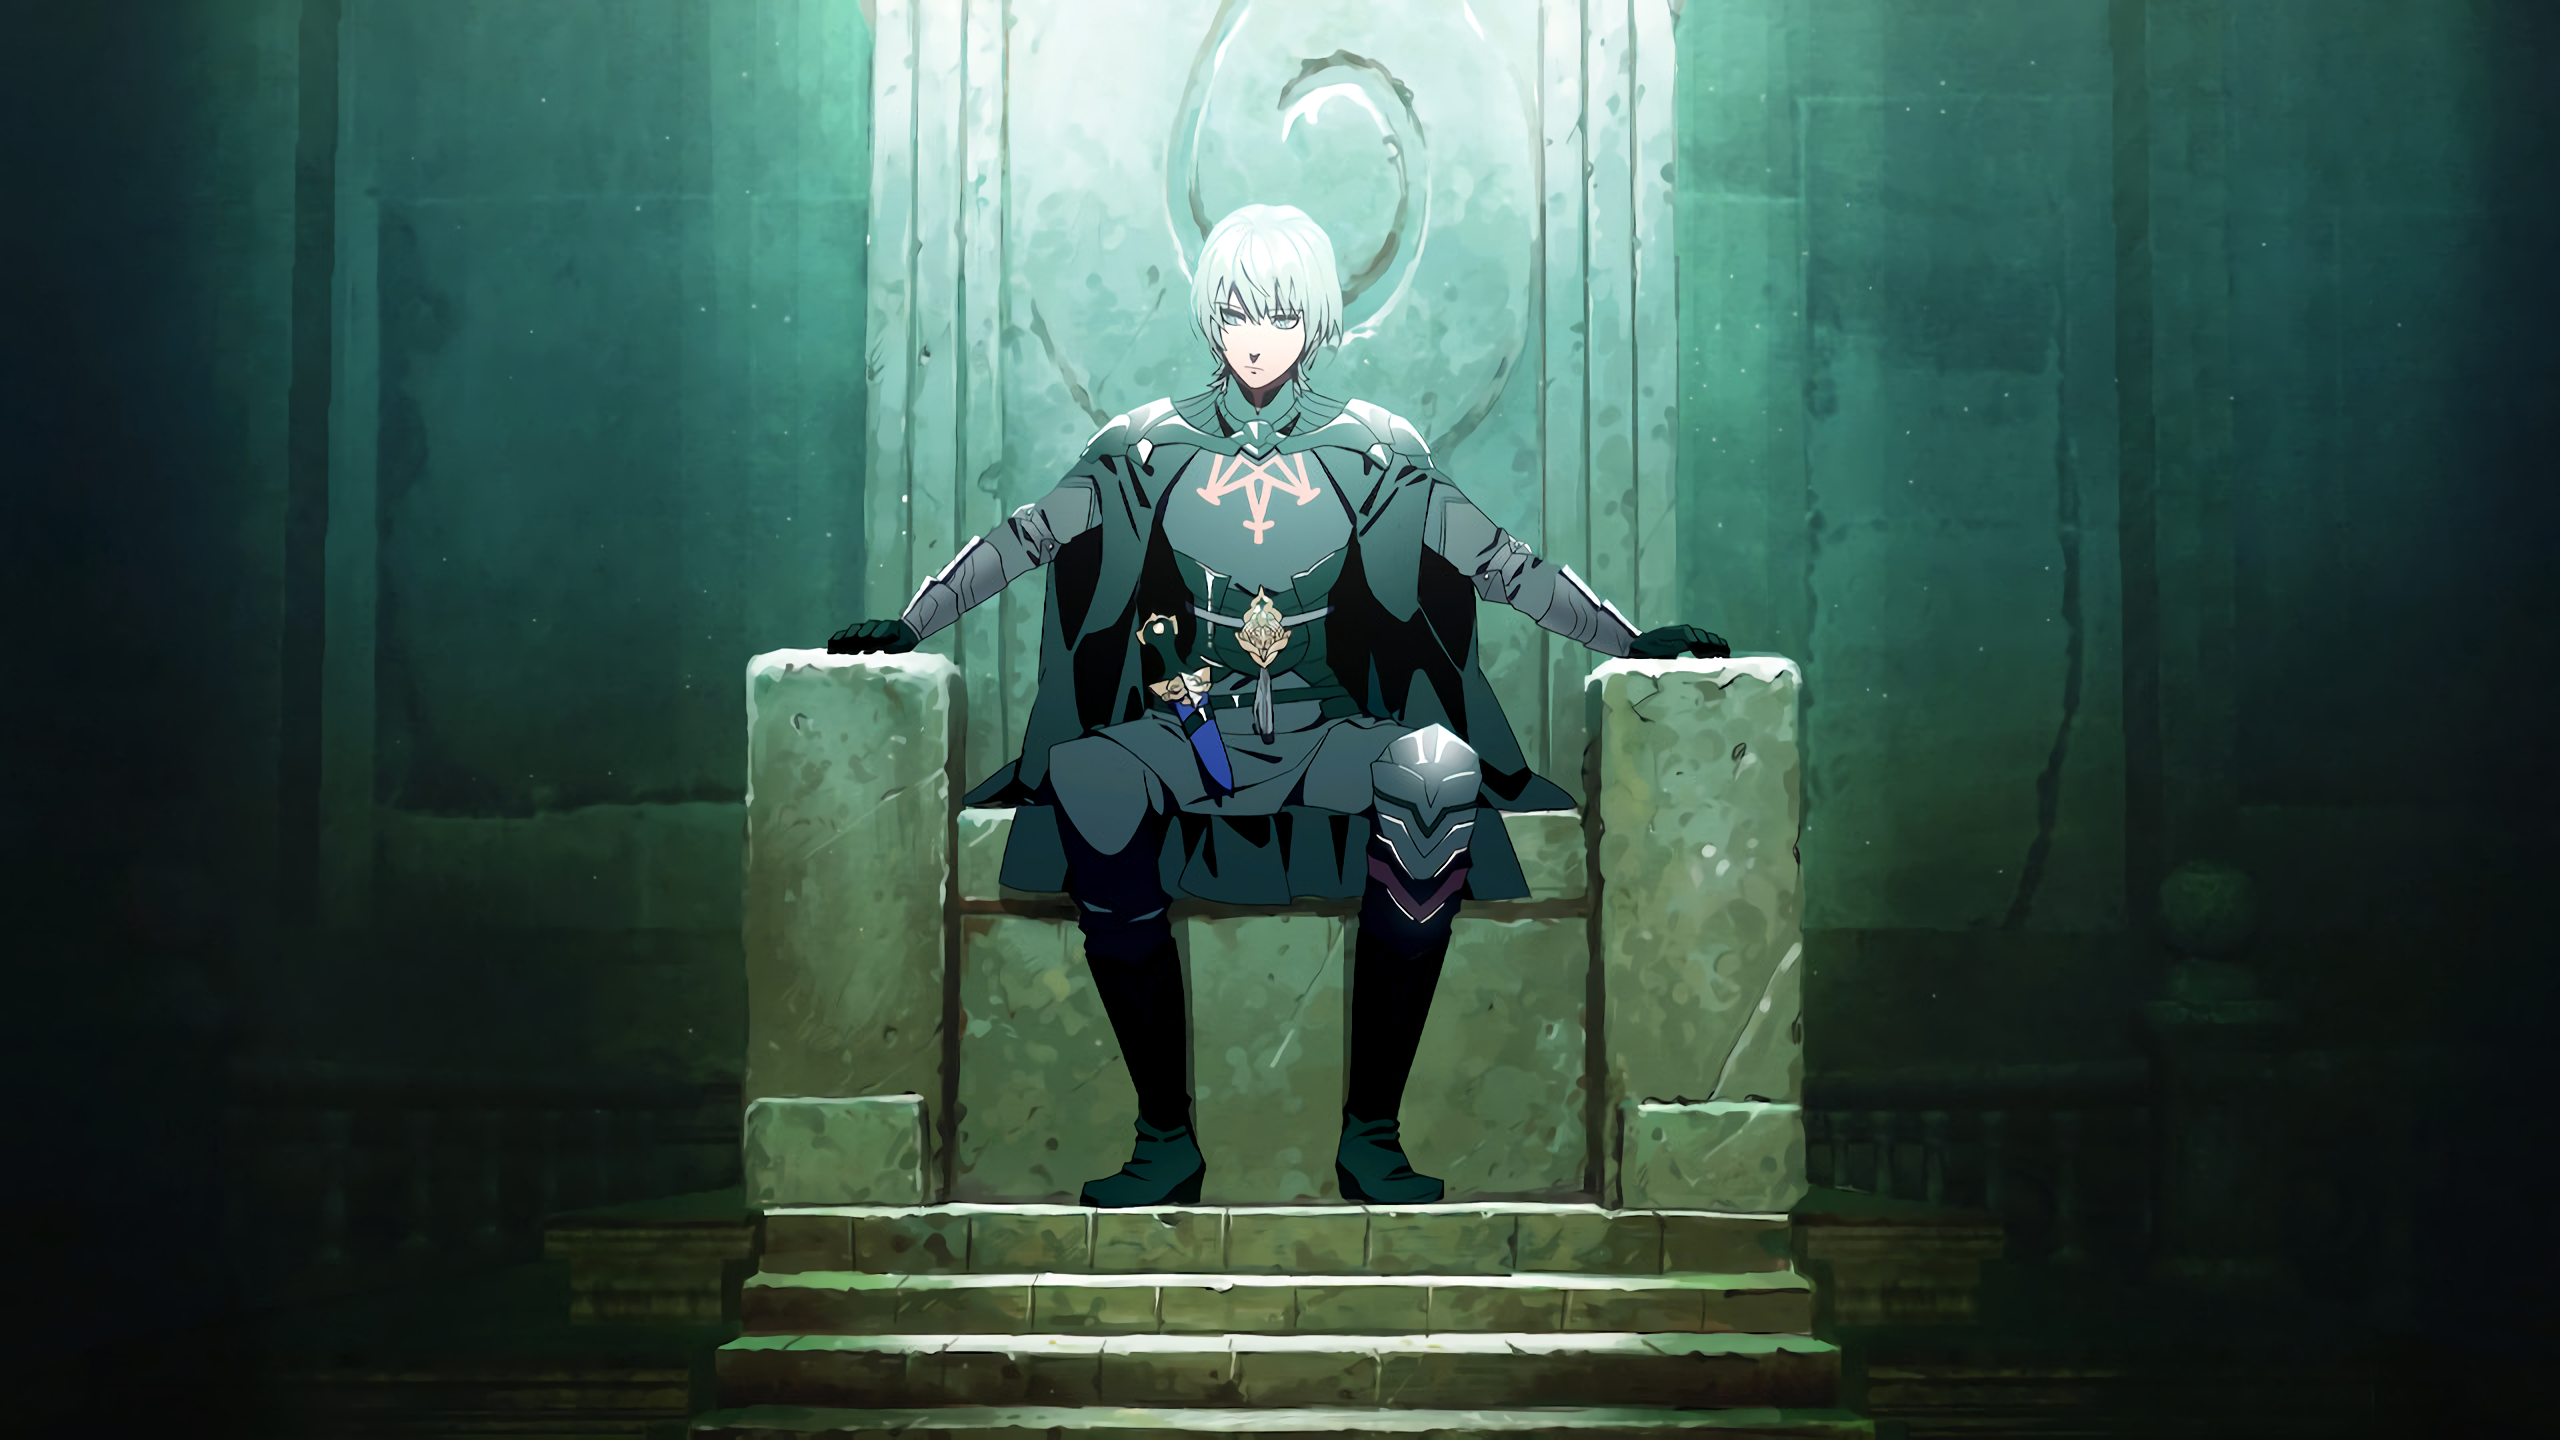 Fire Emblem Three Houses Wallpaper Throne By Kaz Kirigiri On